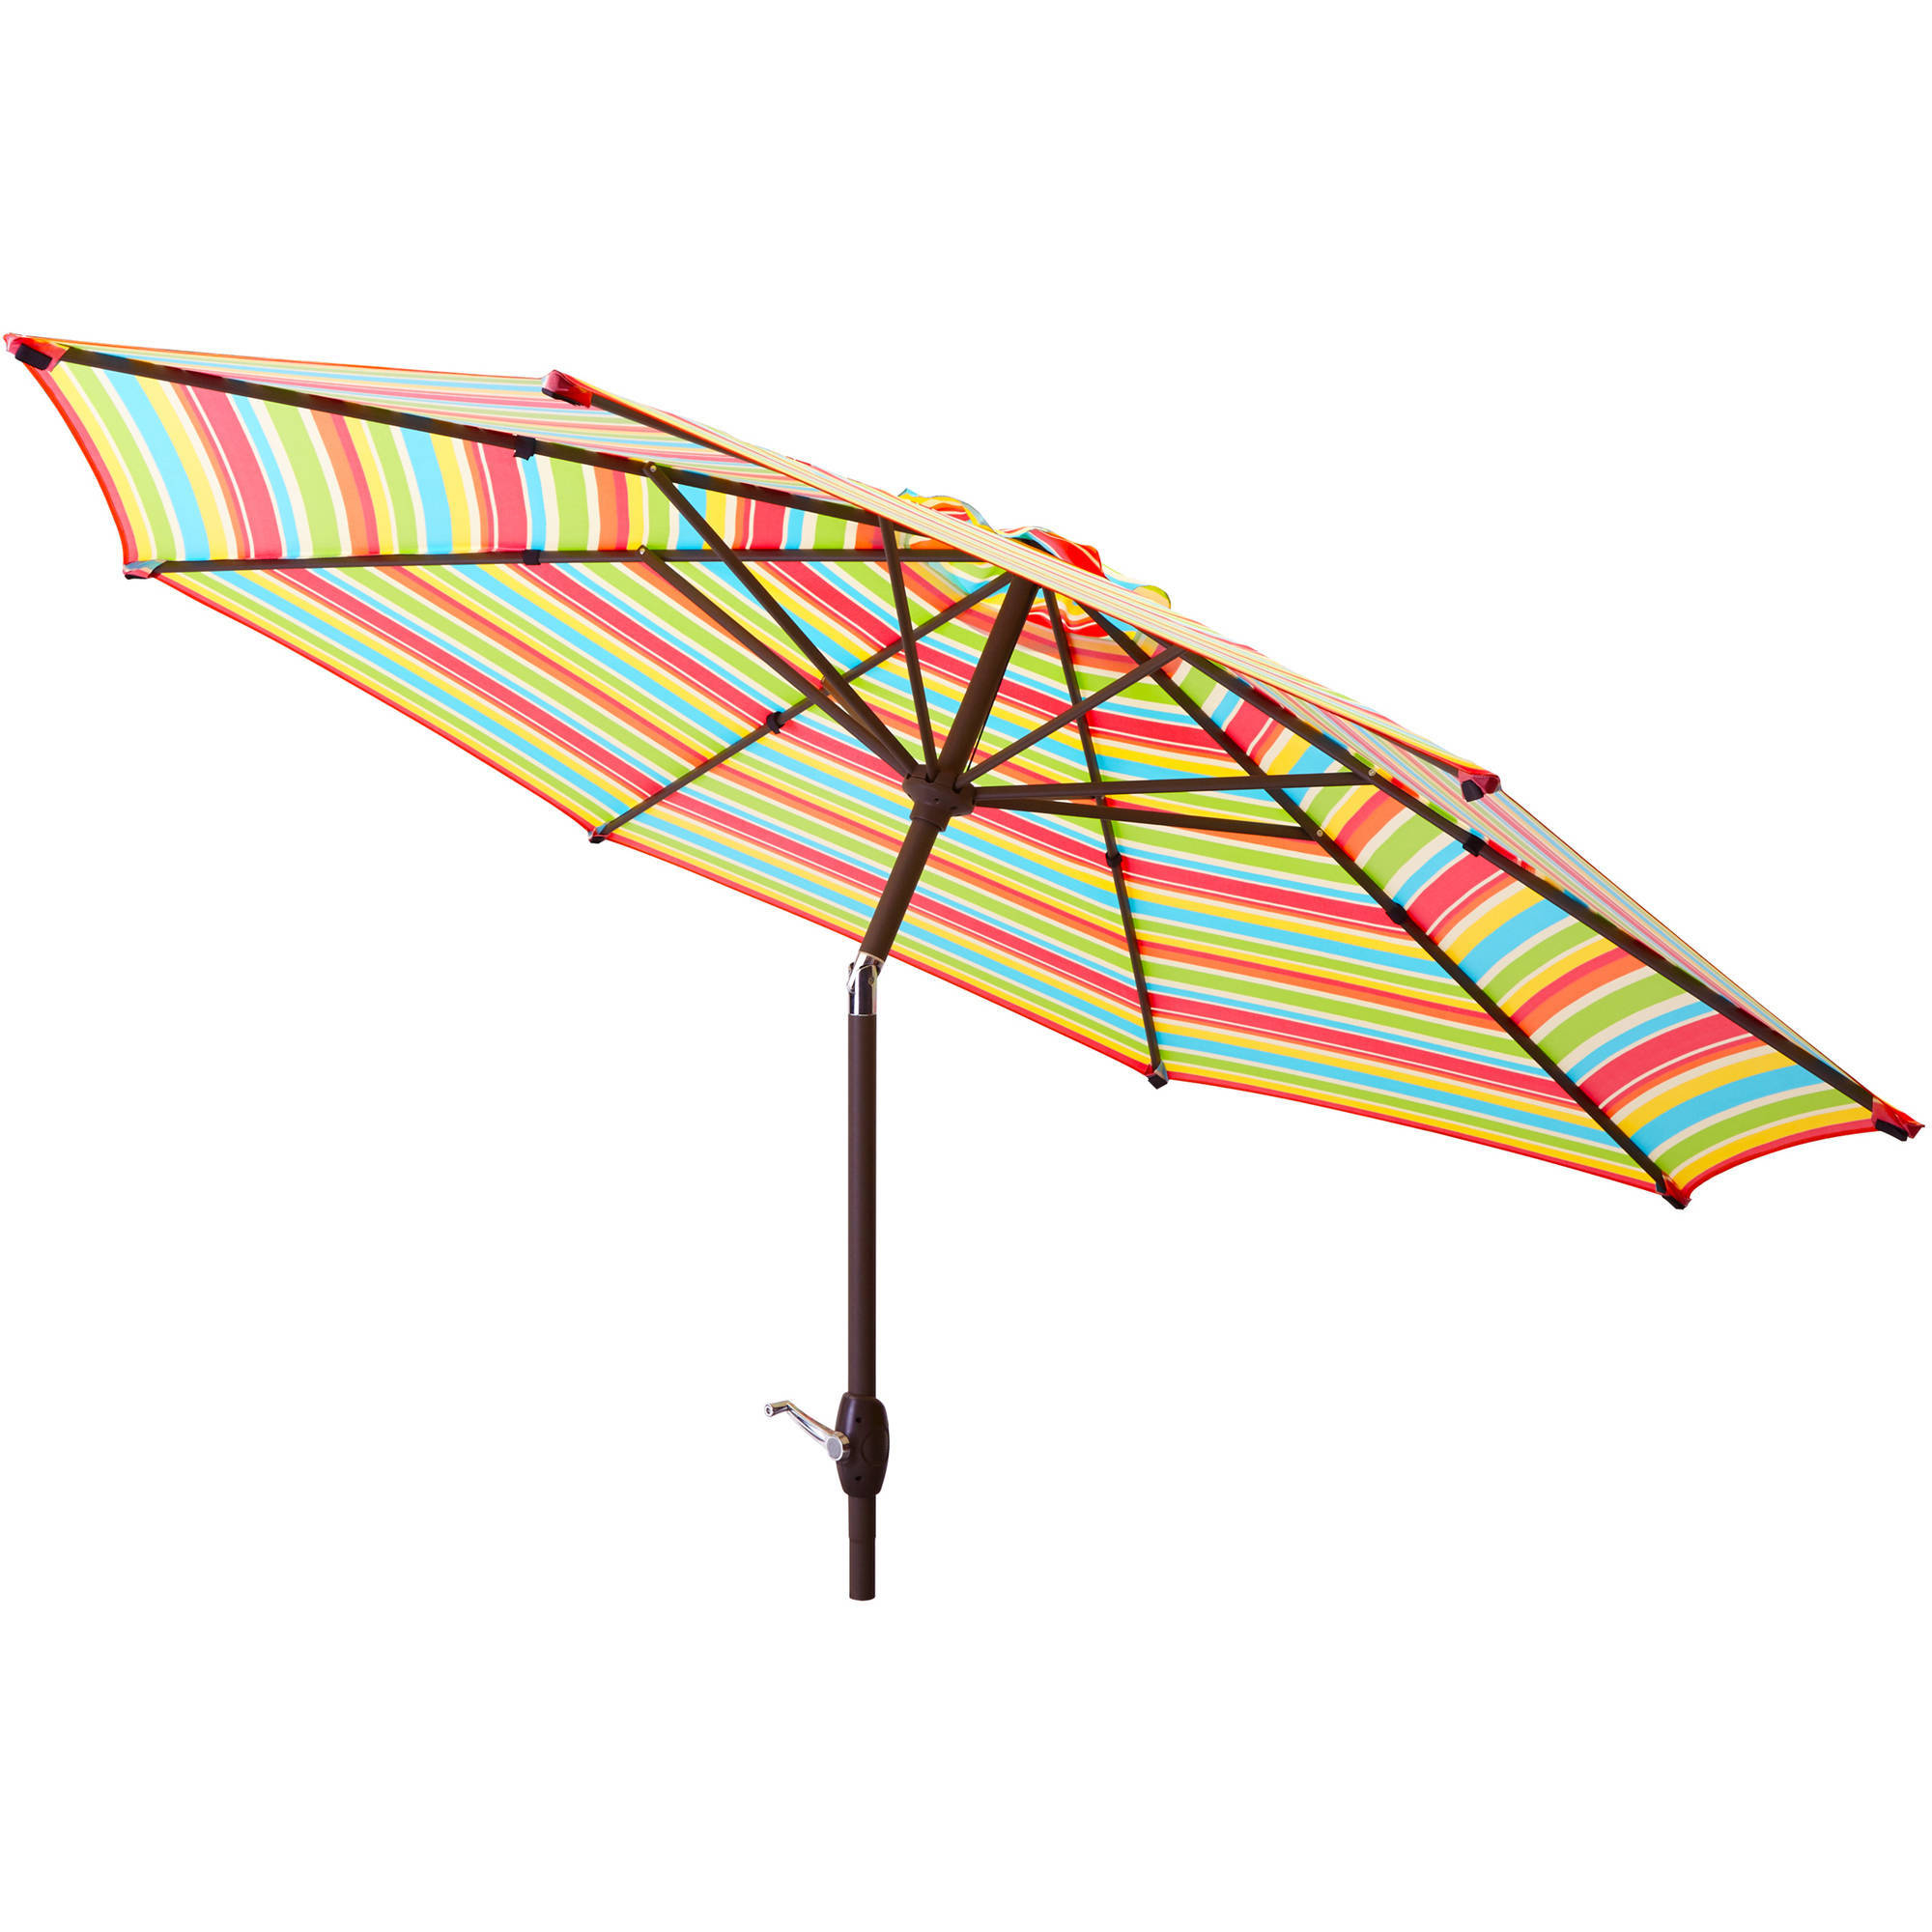 Outdoor Umbrella Gardel Patio Pool 9 Ft Market With Size 2000 X